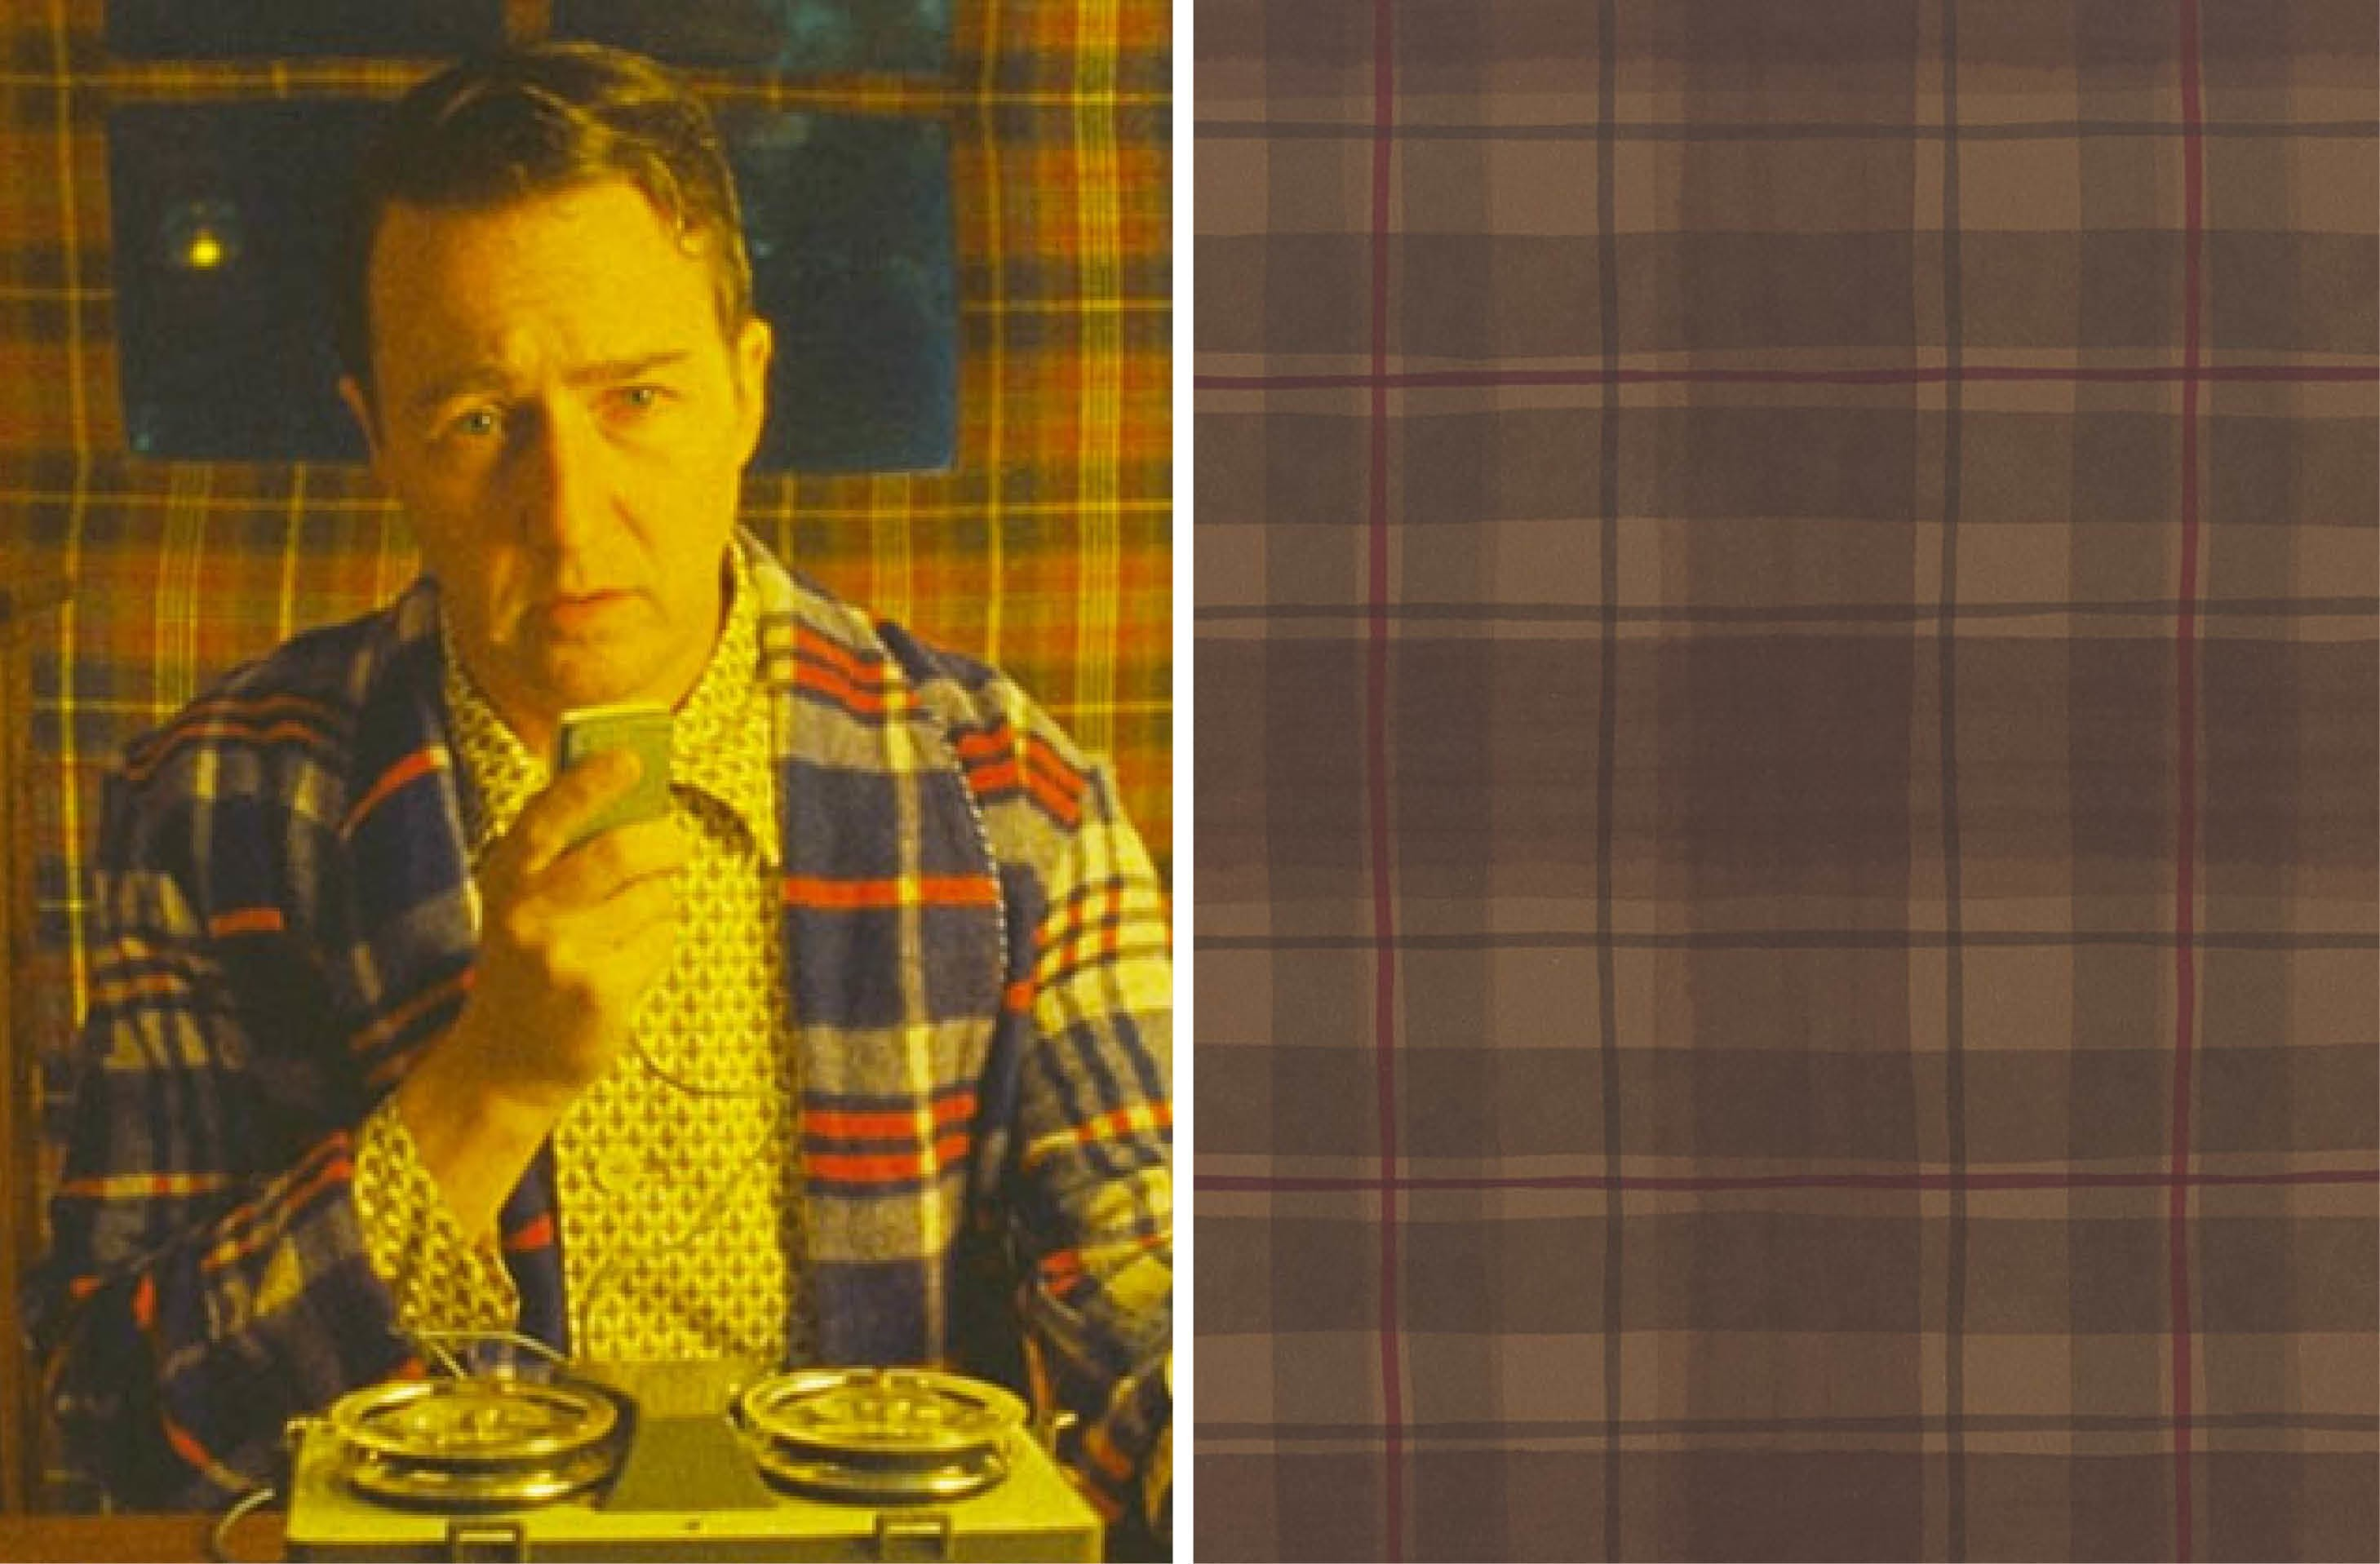 Home and Design: Wallpaper Your Home the Wes Anderson Way — Vogue – Vogue